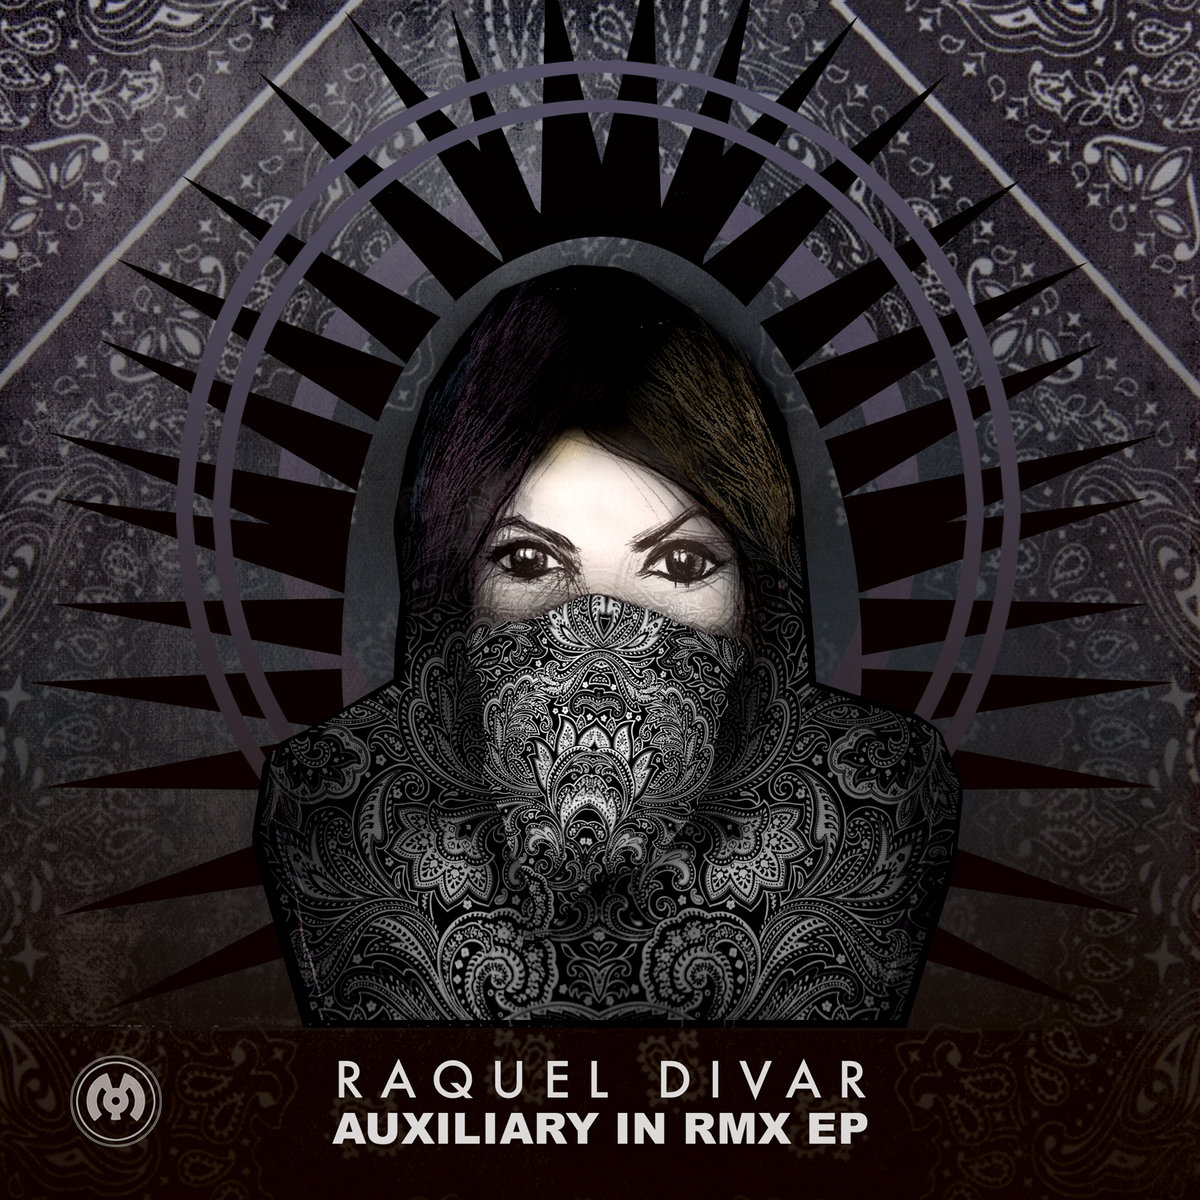 Raquel Divar - Auxilary In (VGNX Remix) @ 'Auxilary In Remix' album (electronic, dubstep)